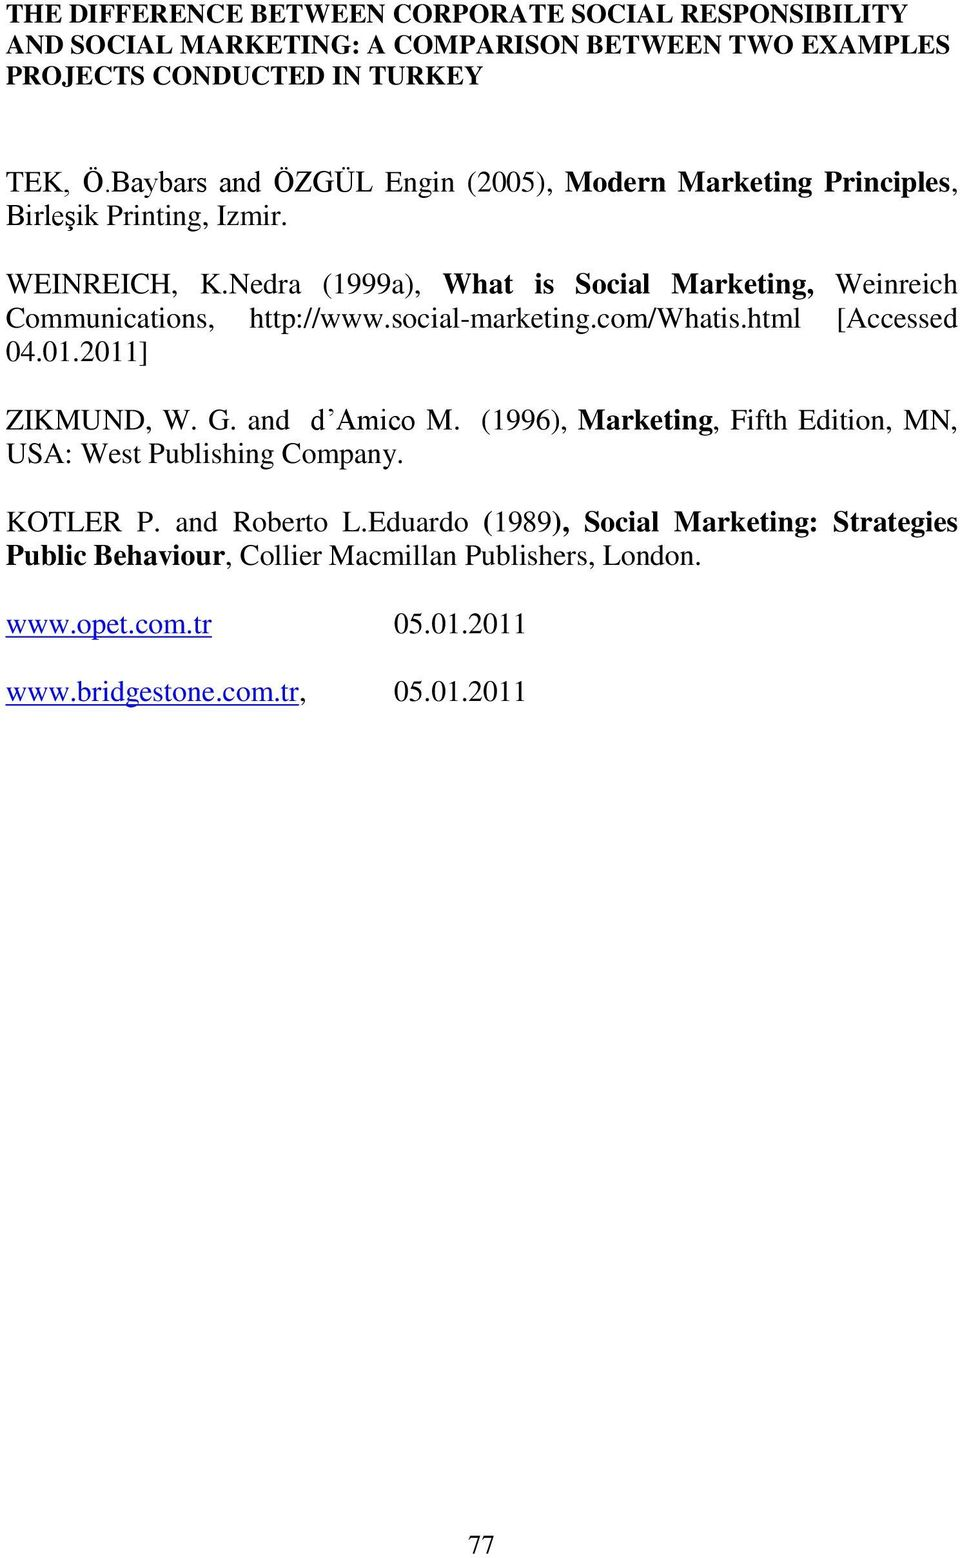 Nedra (1999a), What is Social Marketing, Weinreich Communications, http://www.social-marketing.com/whatis.html [Accessed 04.01.2011] ZIKMUND, W. G. and d Amico M.